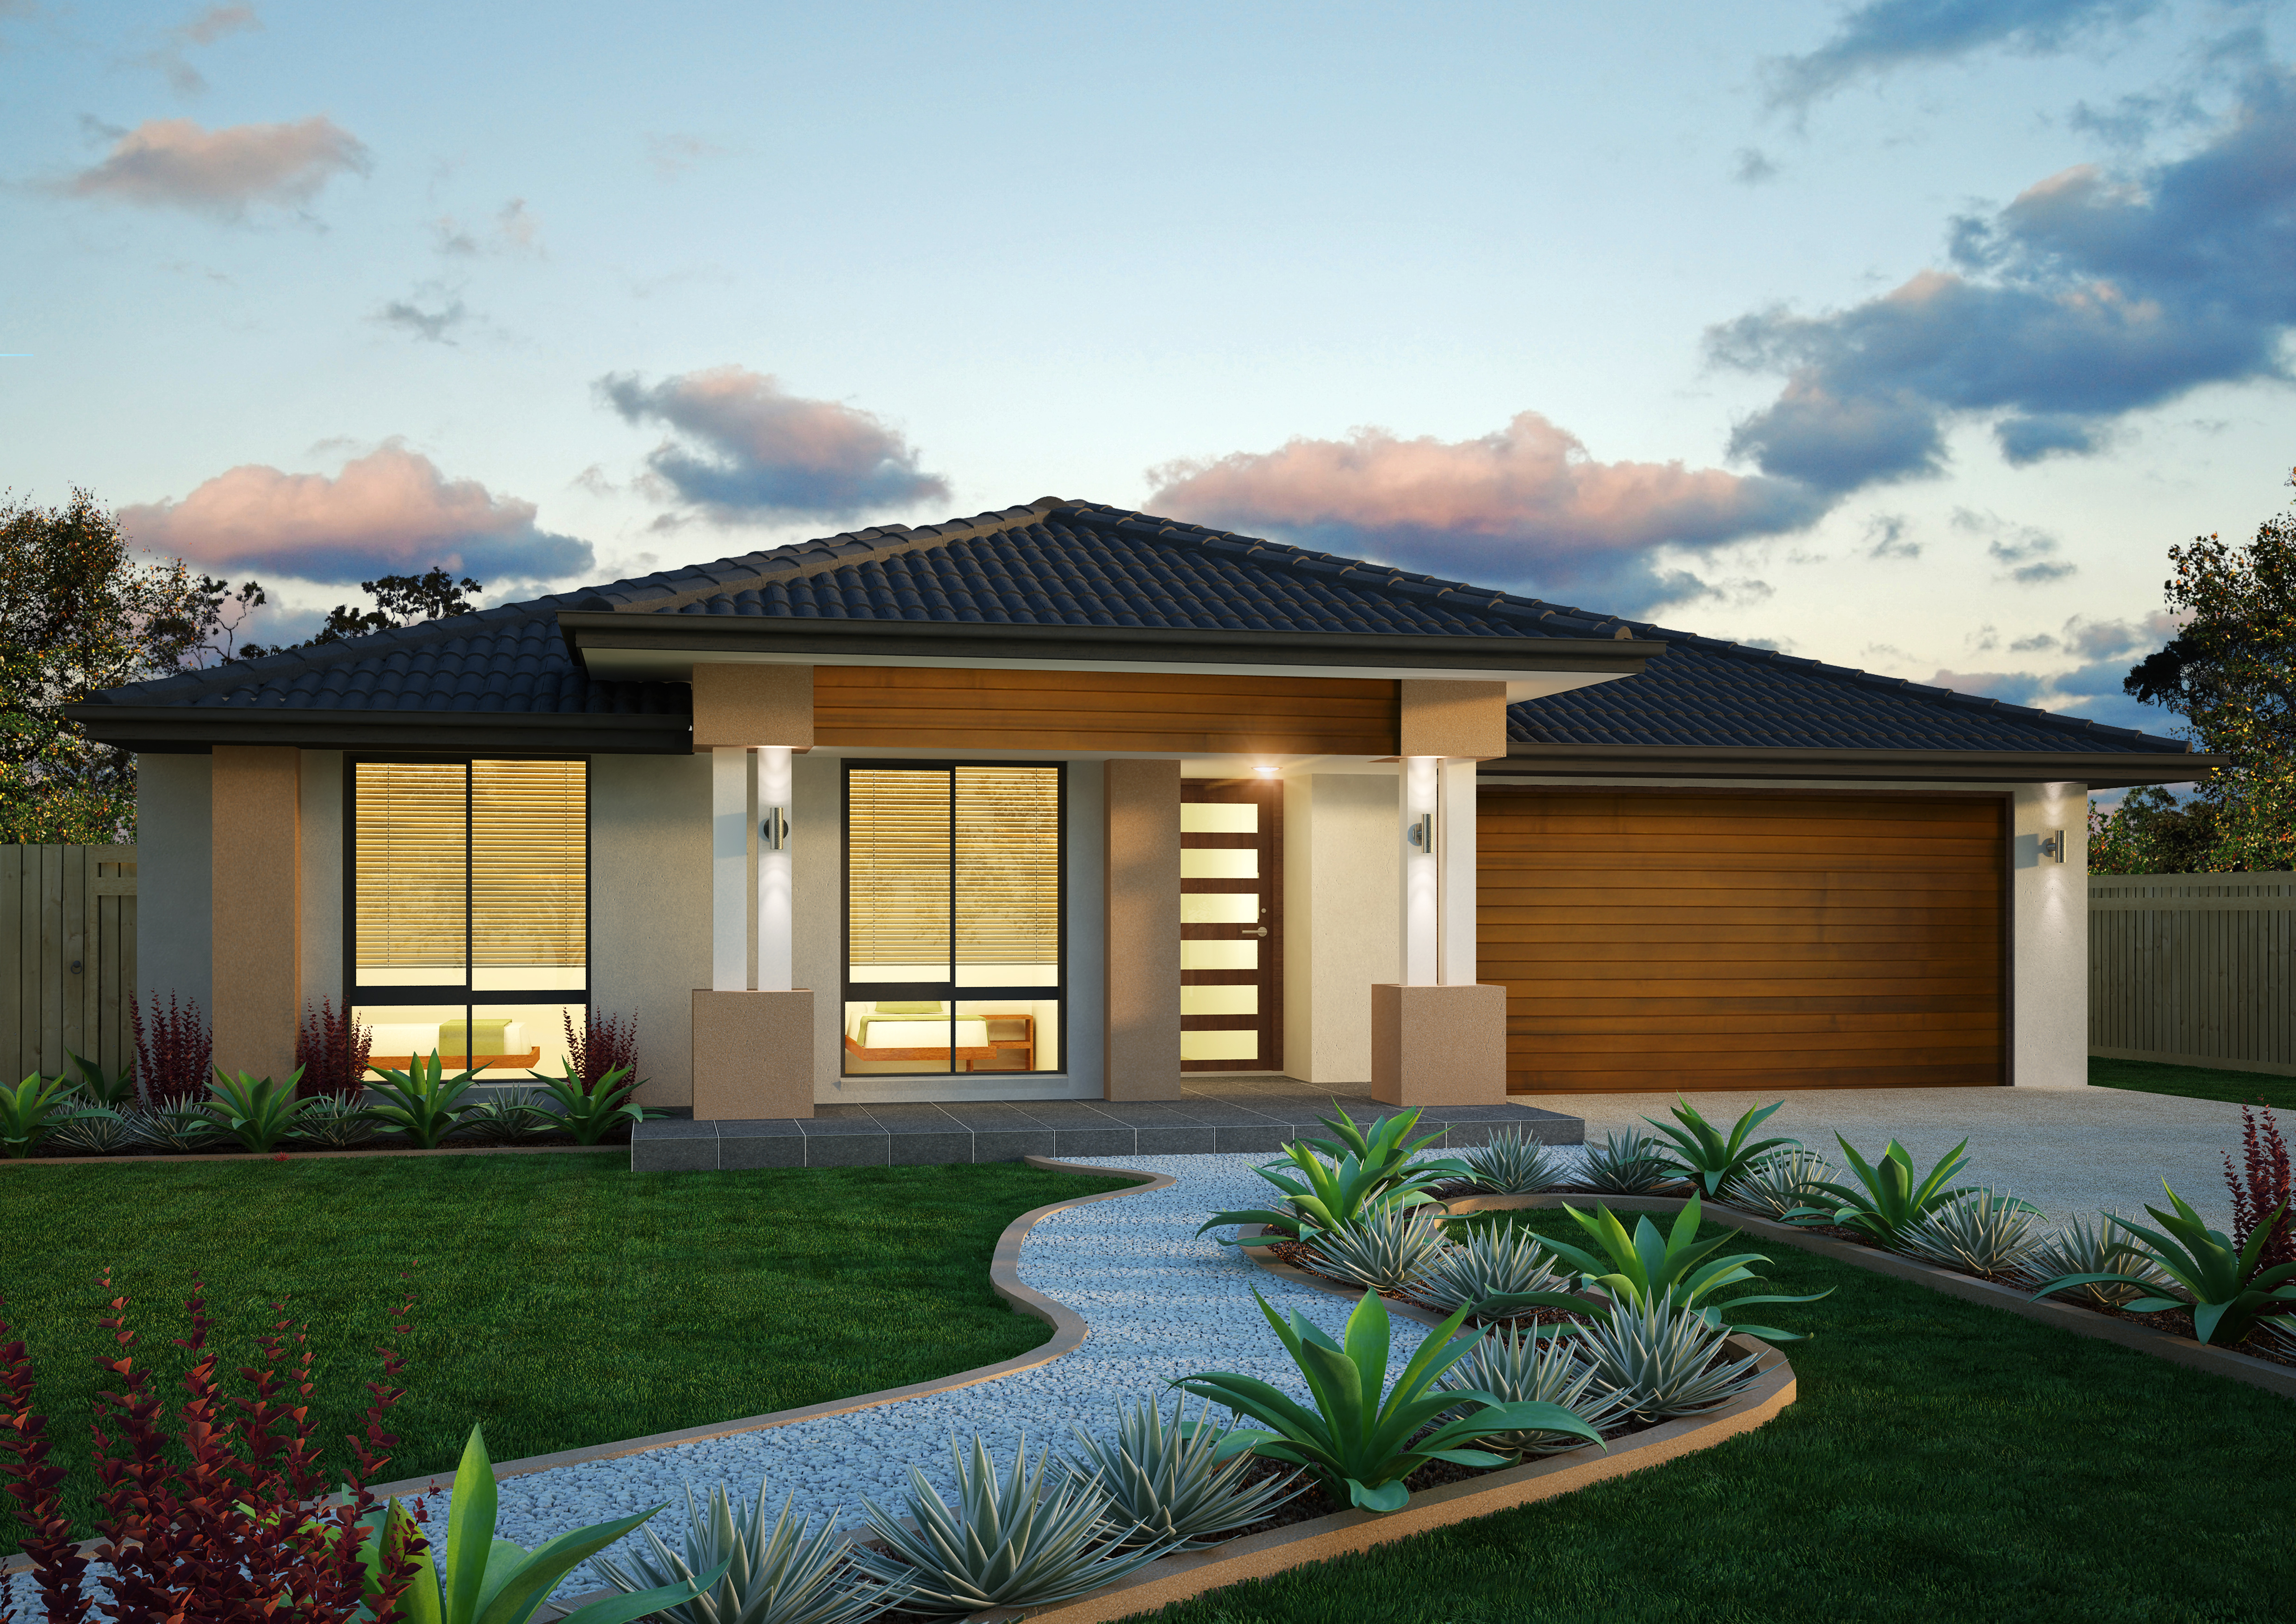 New home designs gold coast 100 new home designs gold for Home designs gold coast